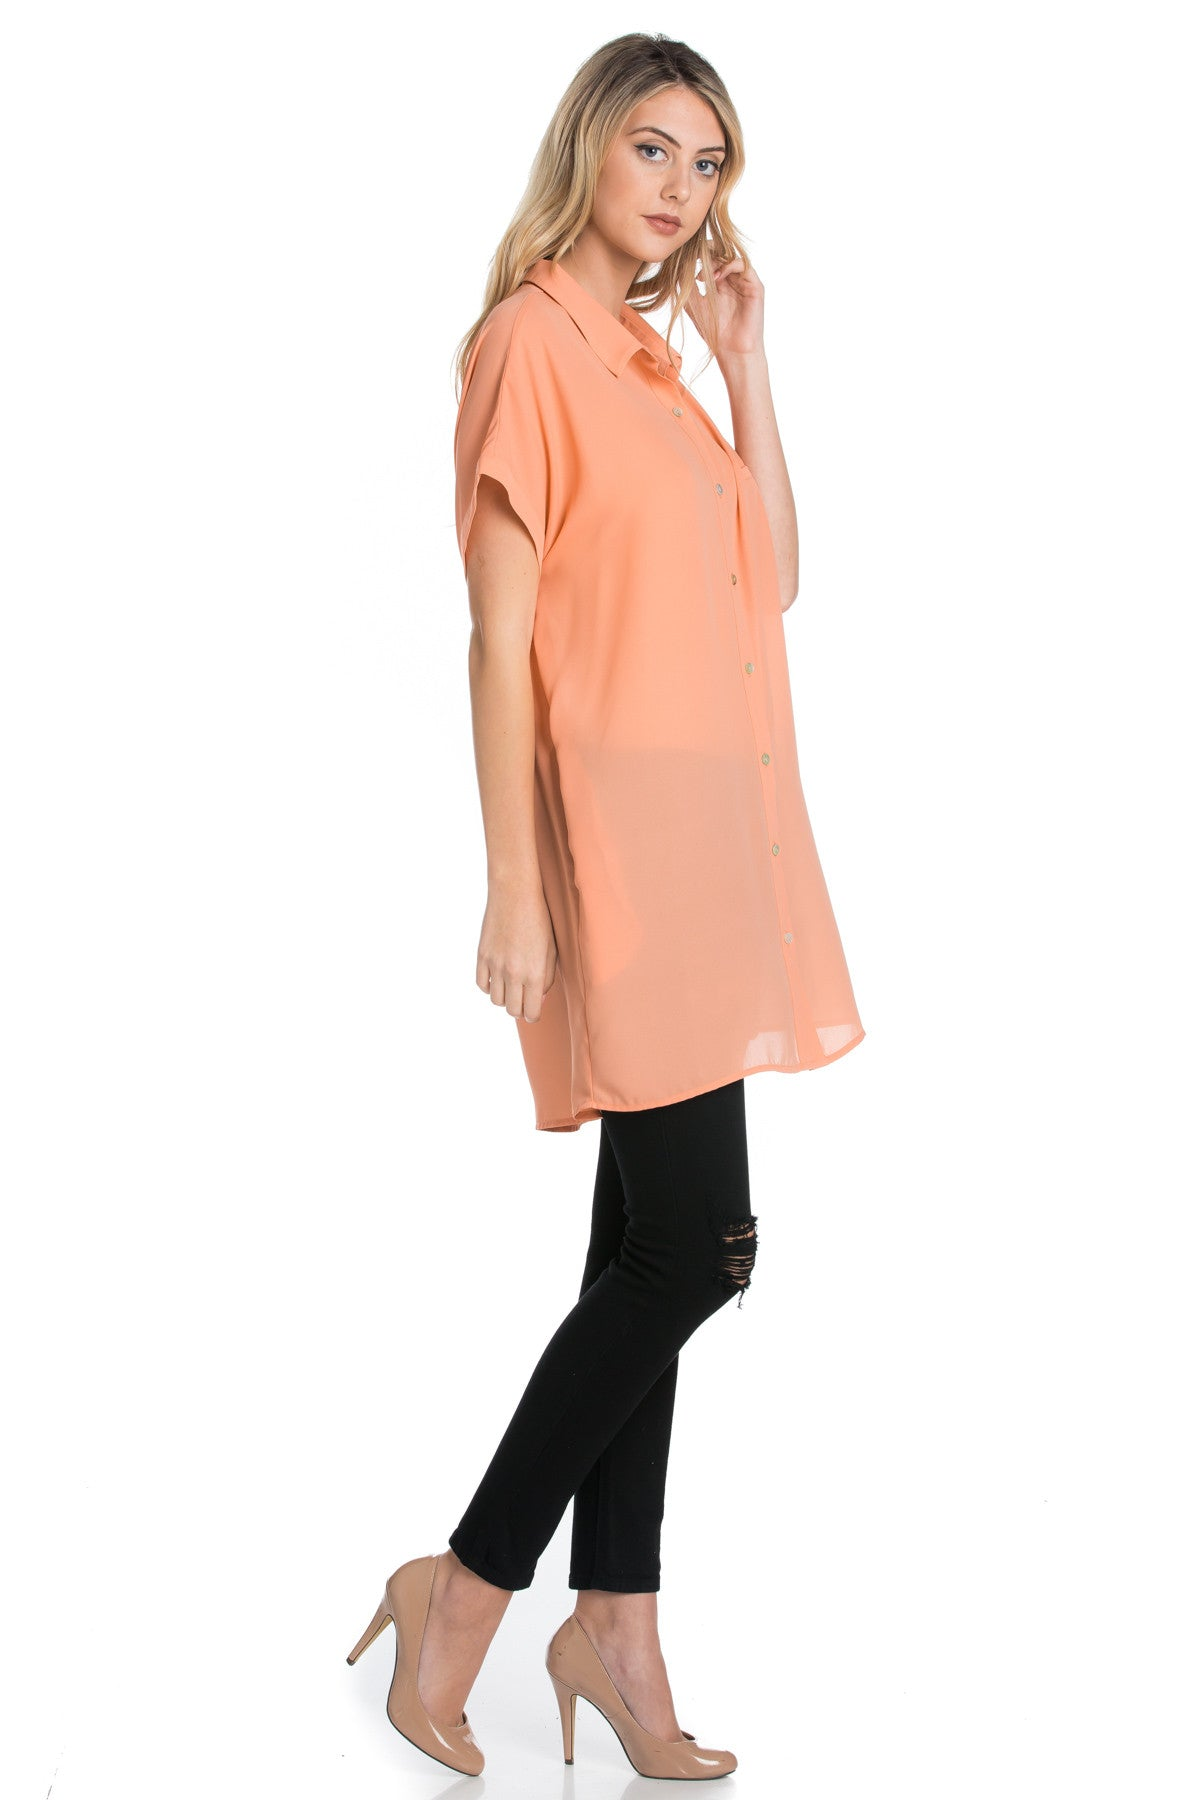 Short Sleeve Longline Button Down Chiffon Top in Peachy - Tops - My Yuccie - 5